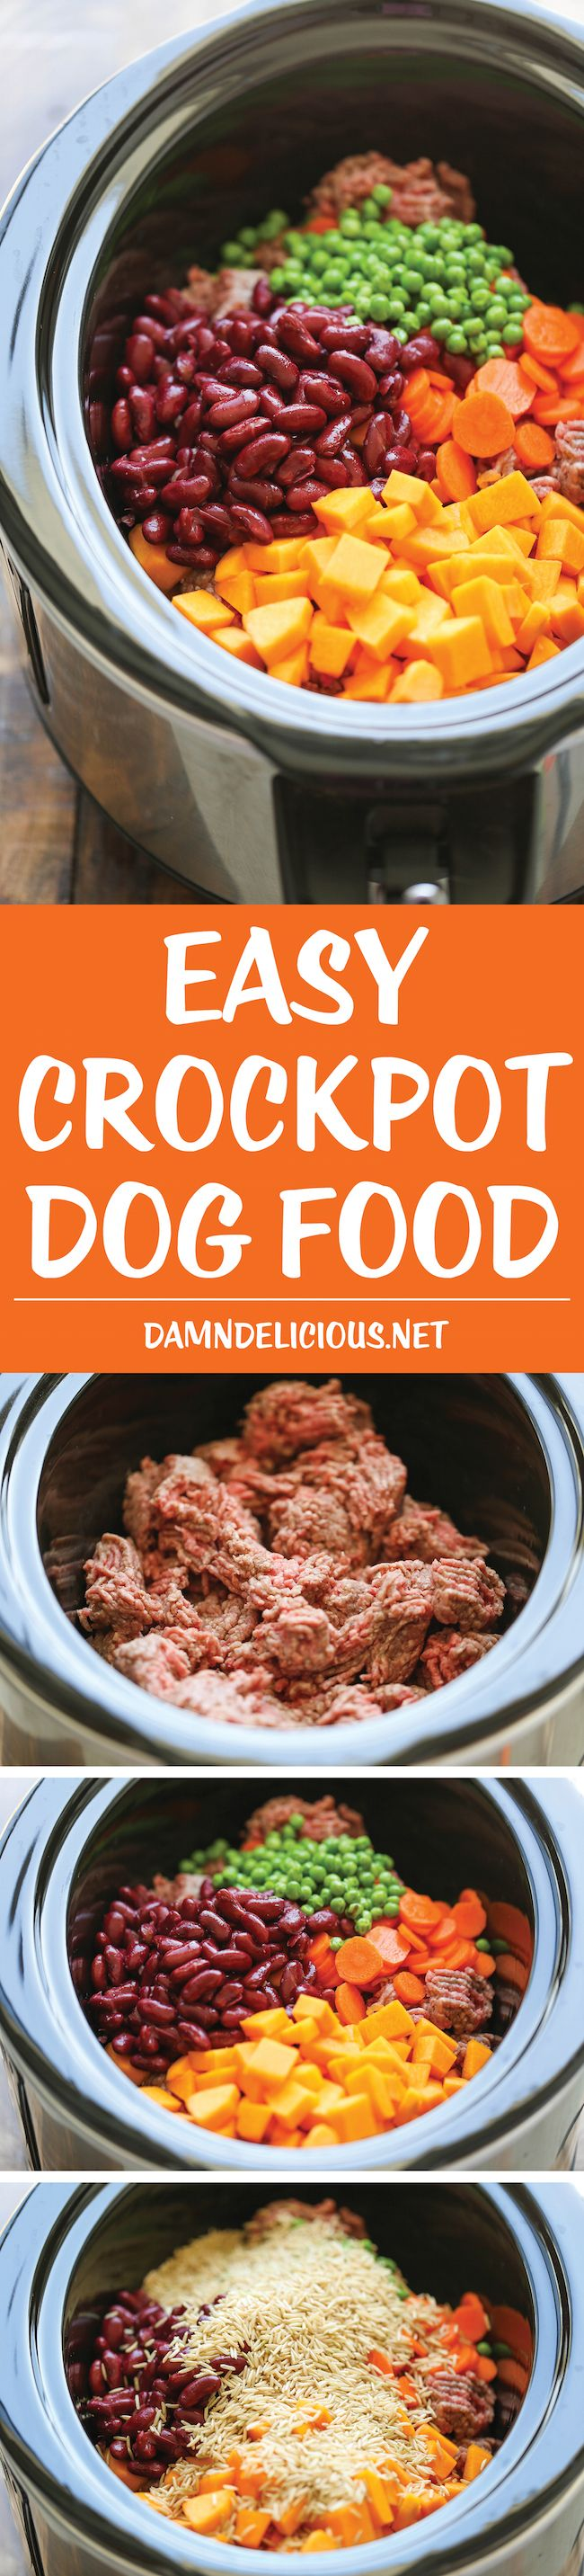 Easy To Digest Homemade Dog Food